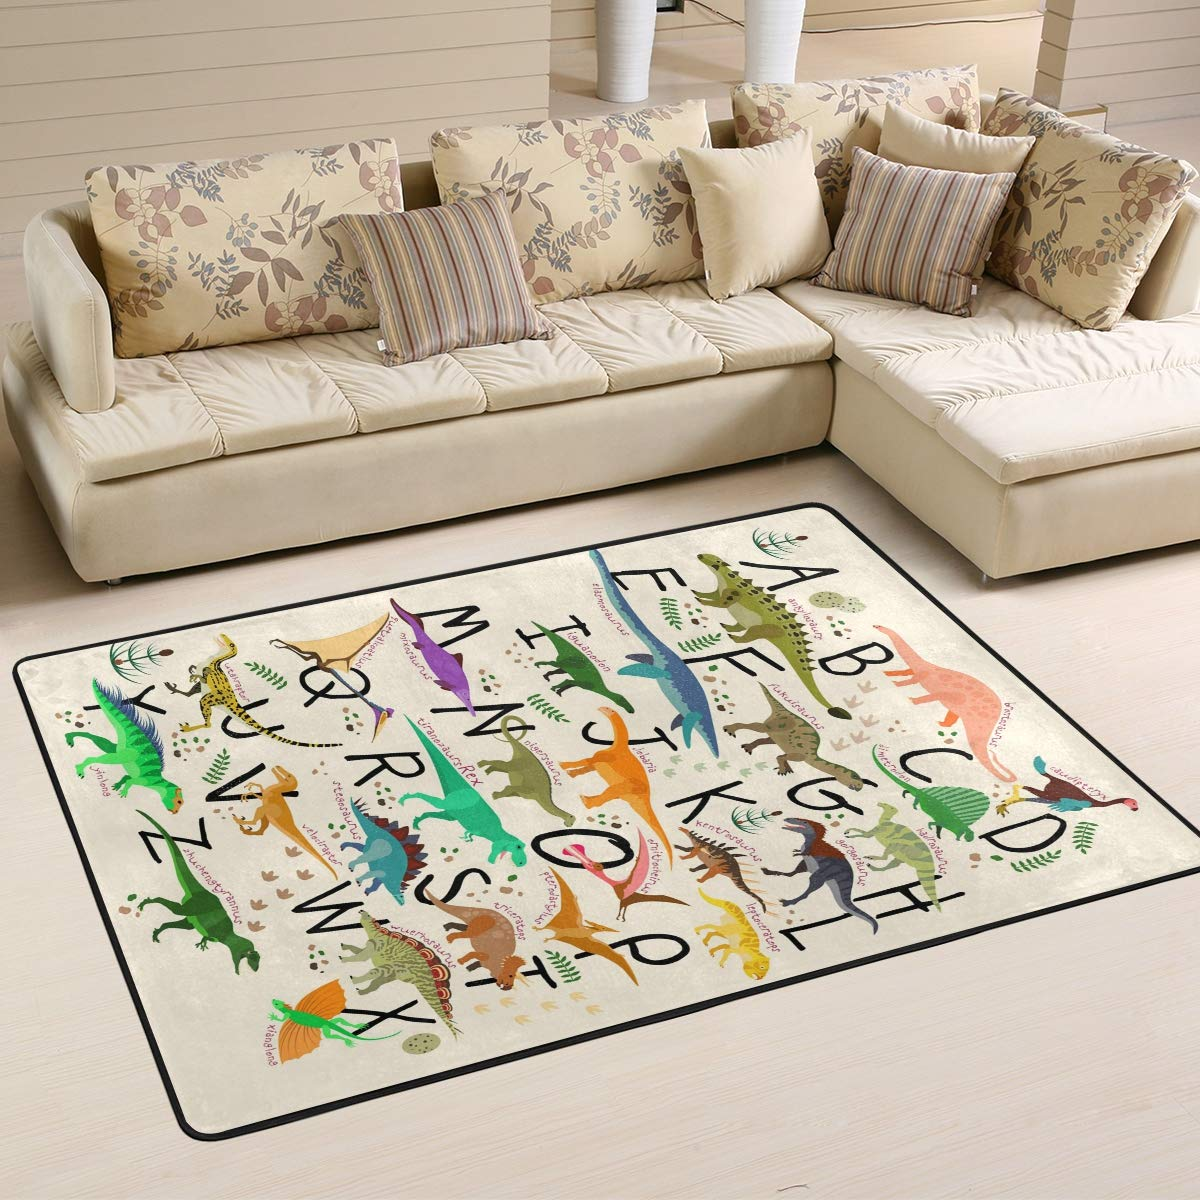 ABC Dinosaurs Area Rugs 5×7 Colorful Modern Area Rug